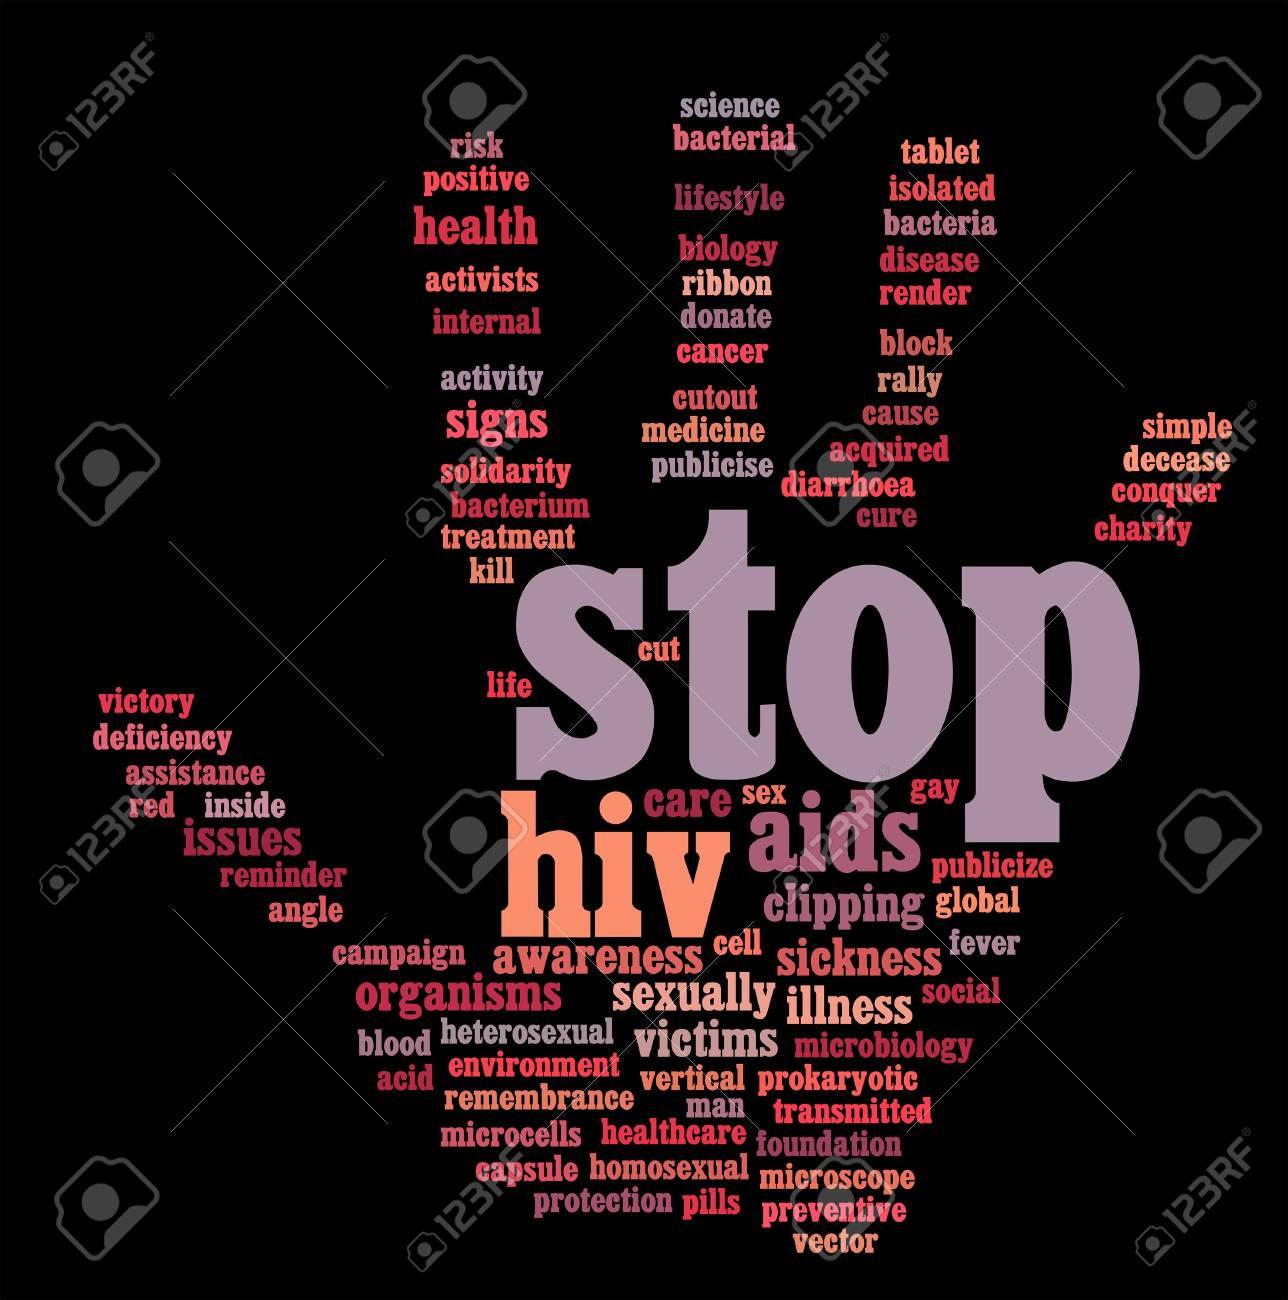 HIV AIDS info-text graphics and arrangement hand symbol concept on black background Stock Photo - 15874960